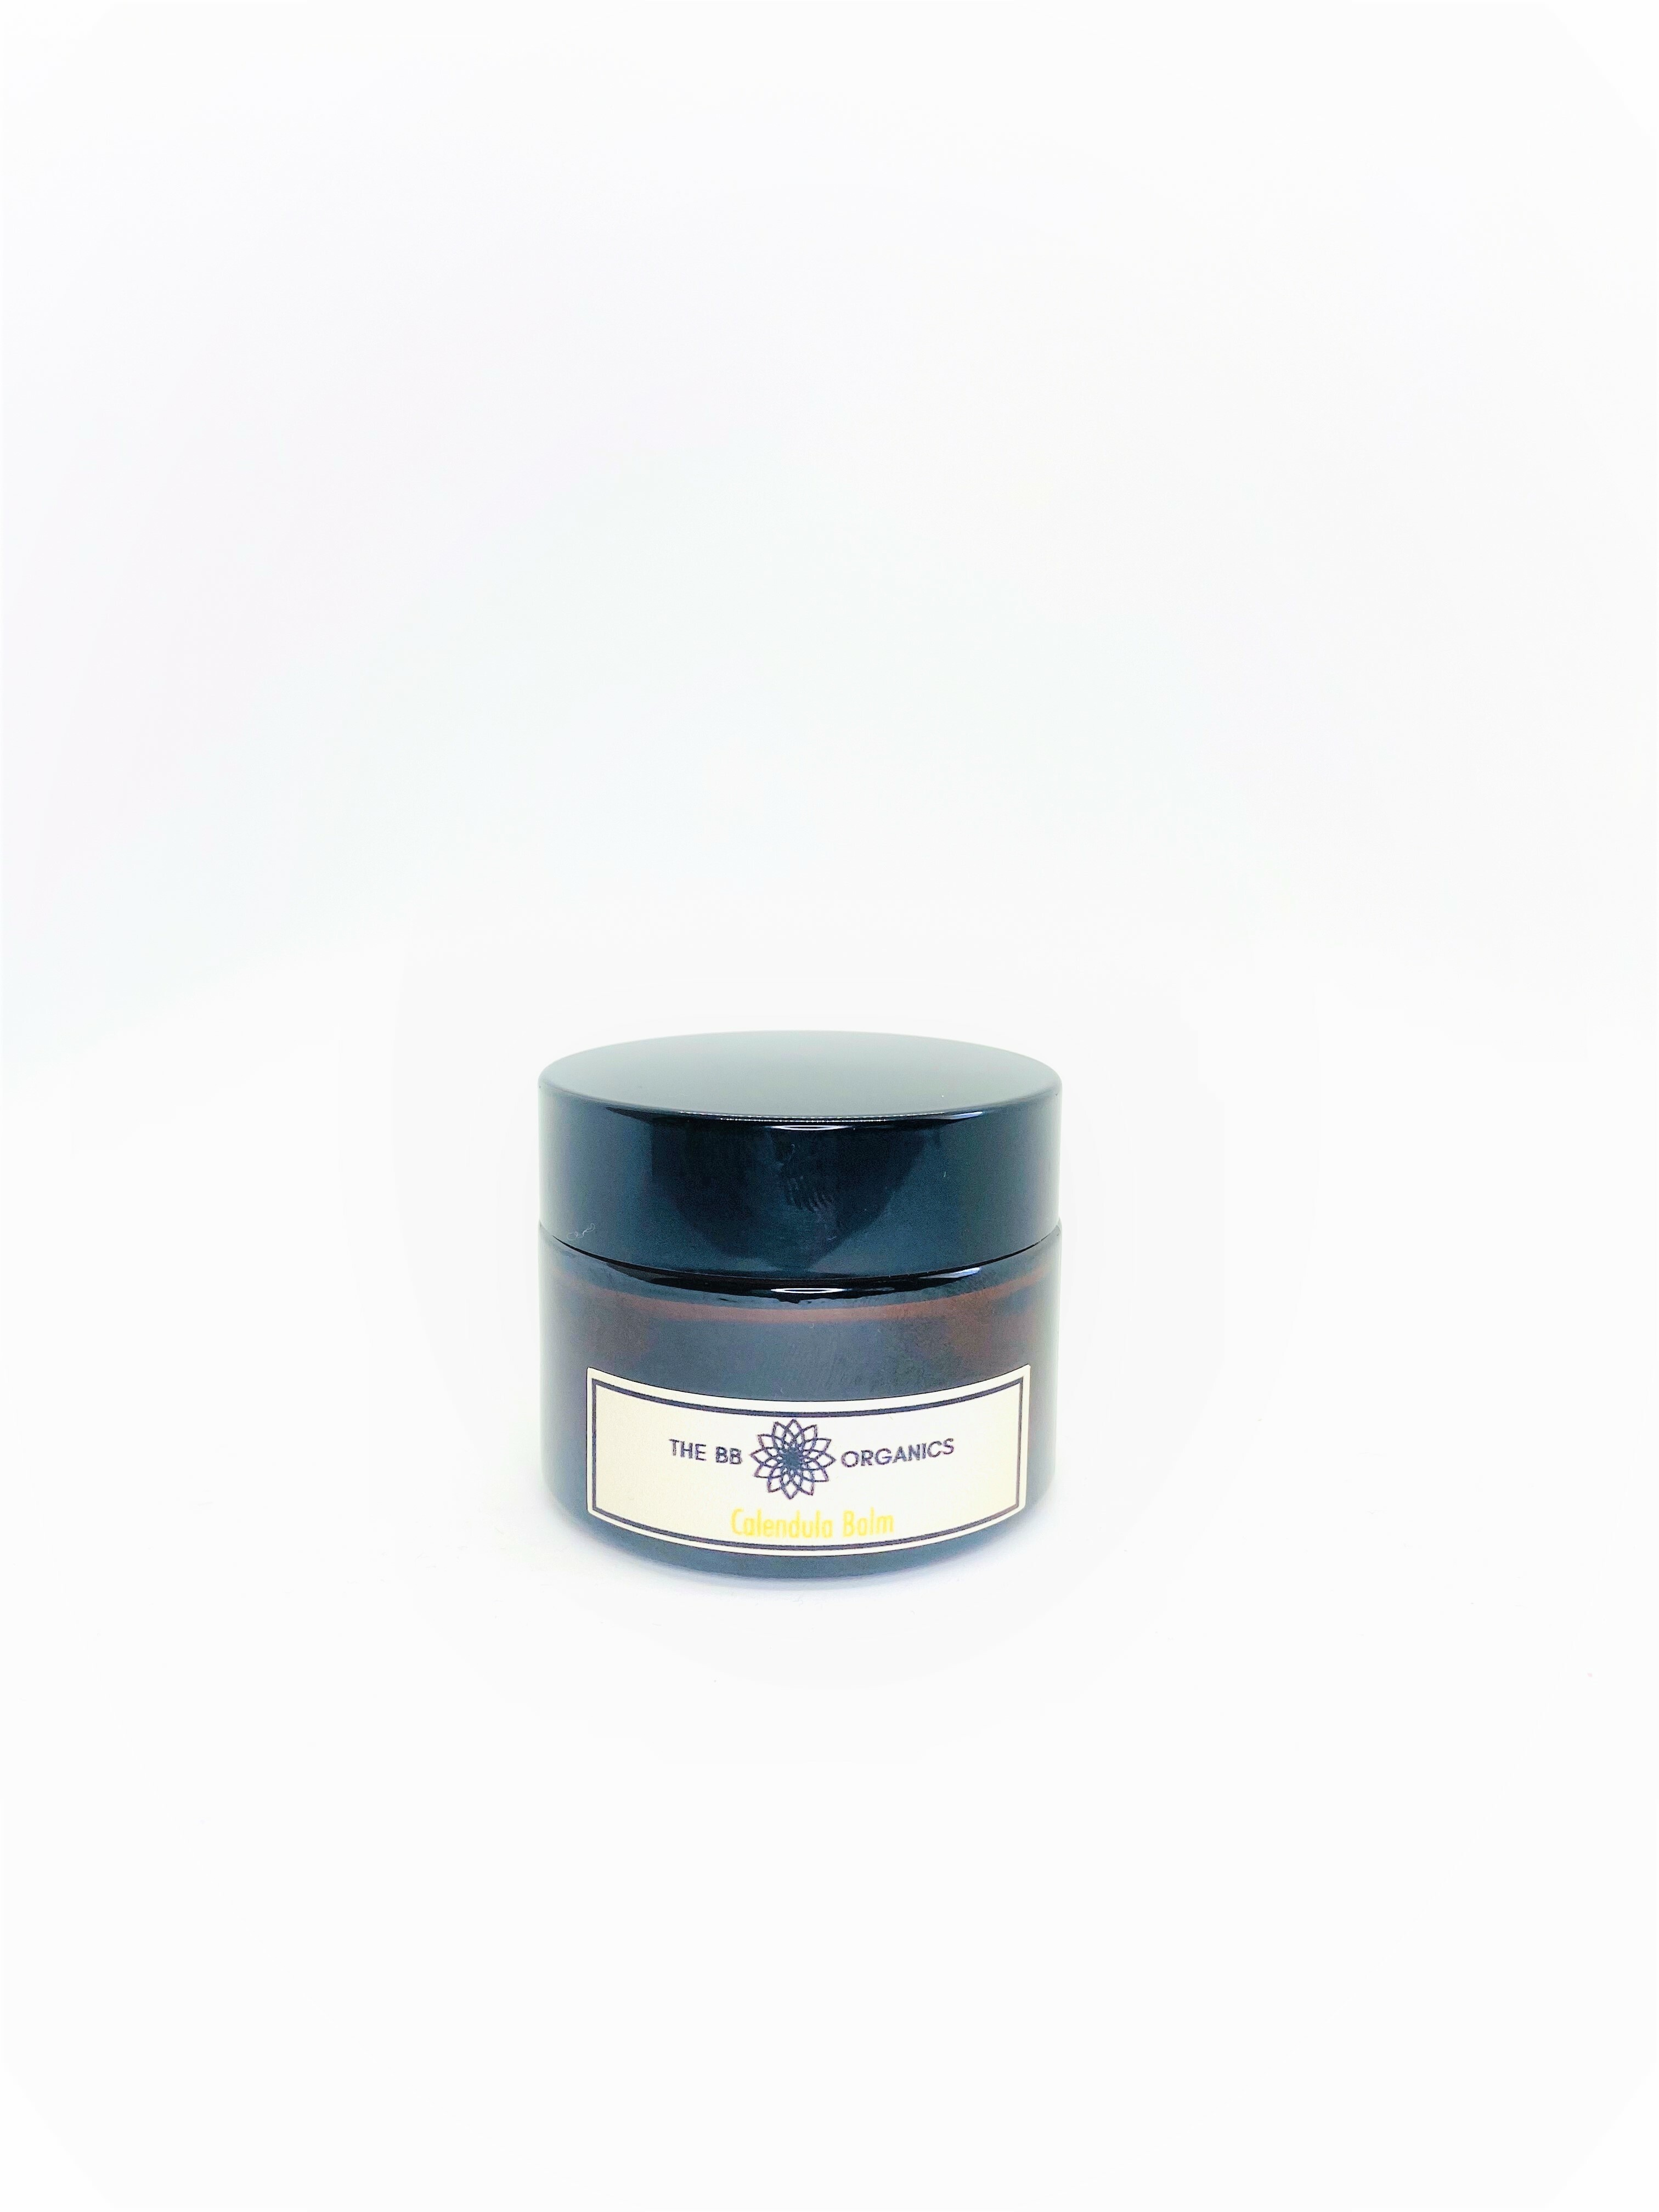 CALENDULA BALM -                                                             Our miracle balm for all skin type 00030